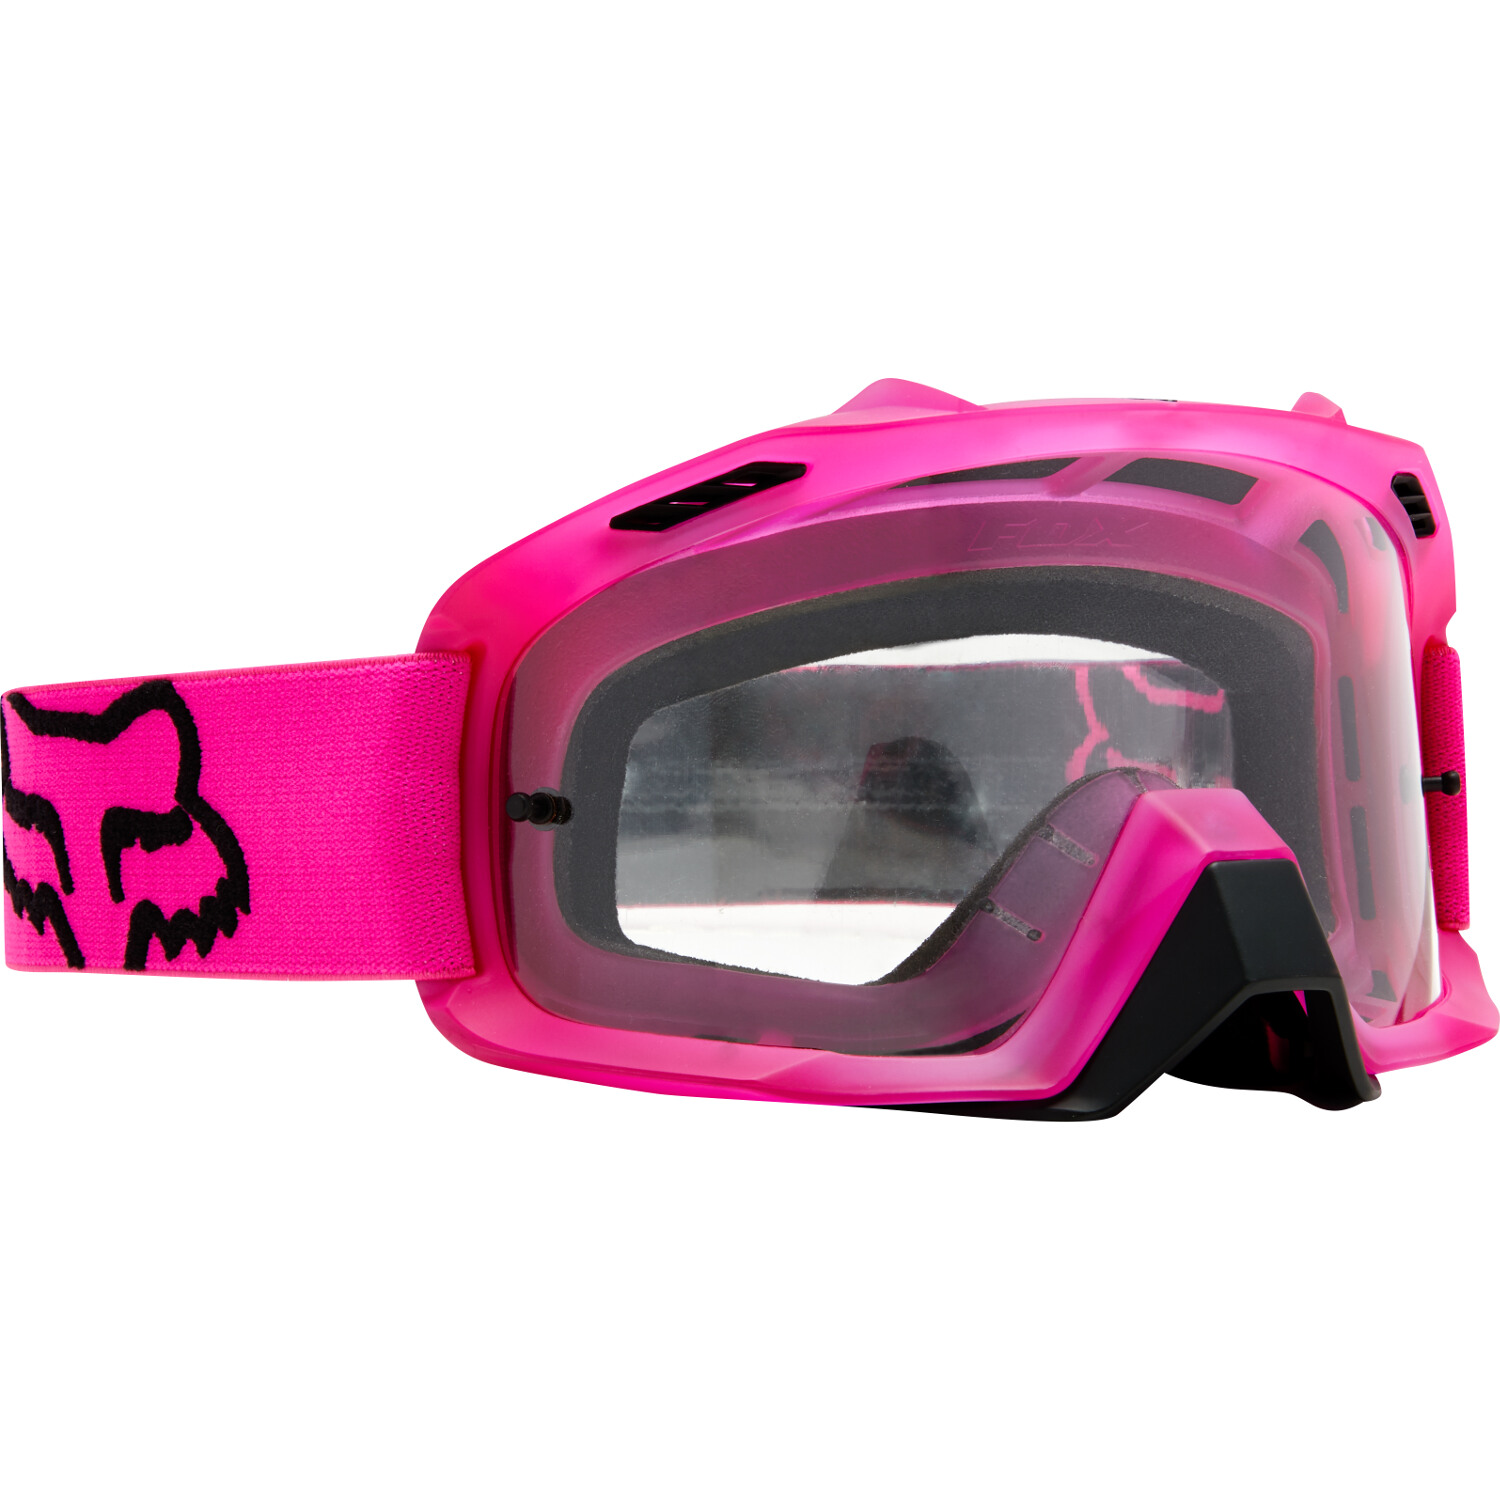 20576-170-OS Fox Racing Air Space Pink Motocross Enduro Off-Road Goggle Masque Brille Crossbril